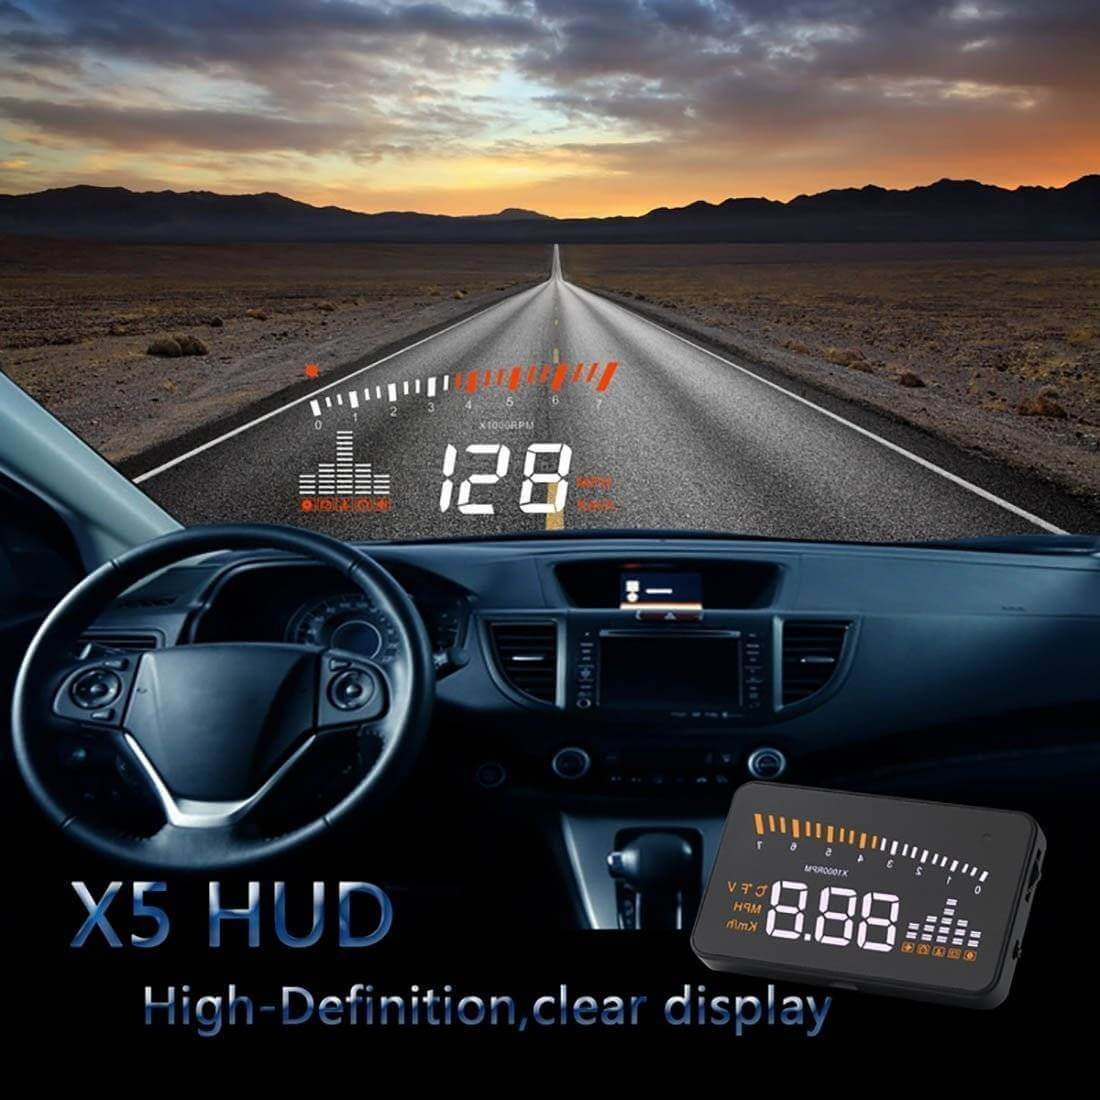 Acecar-Car-HUD-1-1 Top 9 Best Heads Up Display (HUD) for Cars in 2019